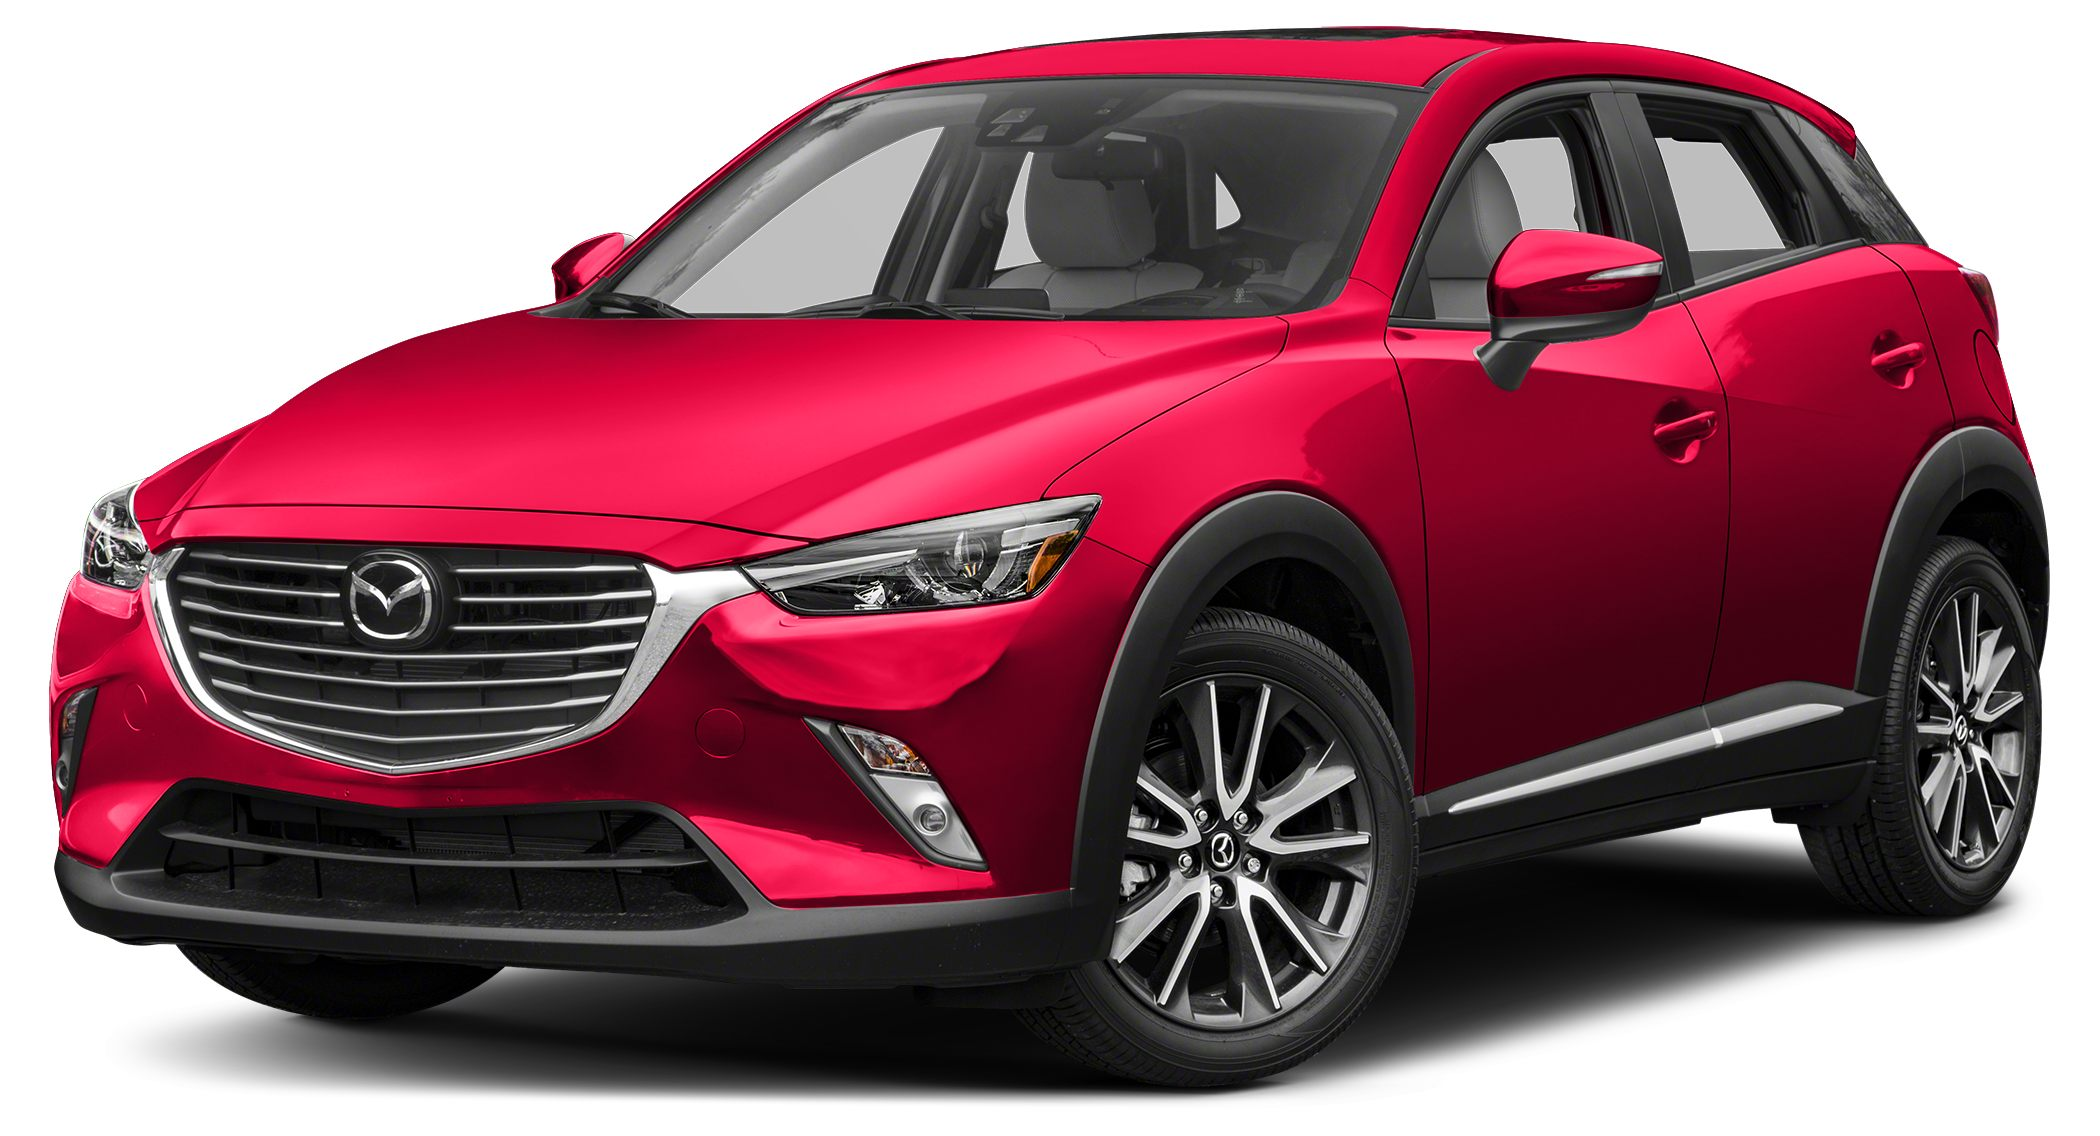 2016 Mazda CX-3 Grand Touring GRAND TOURING ONLY 4K MILES AVAILABLE FOR LIMITED TIME CALL FAST